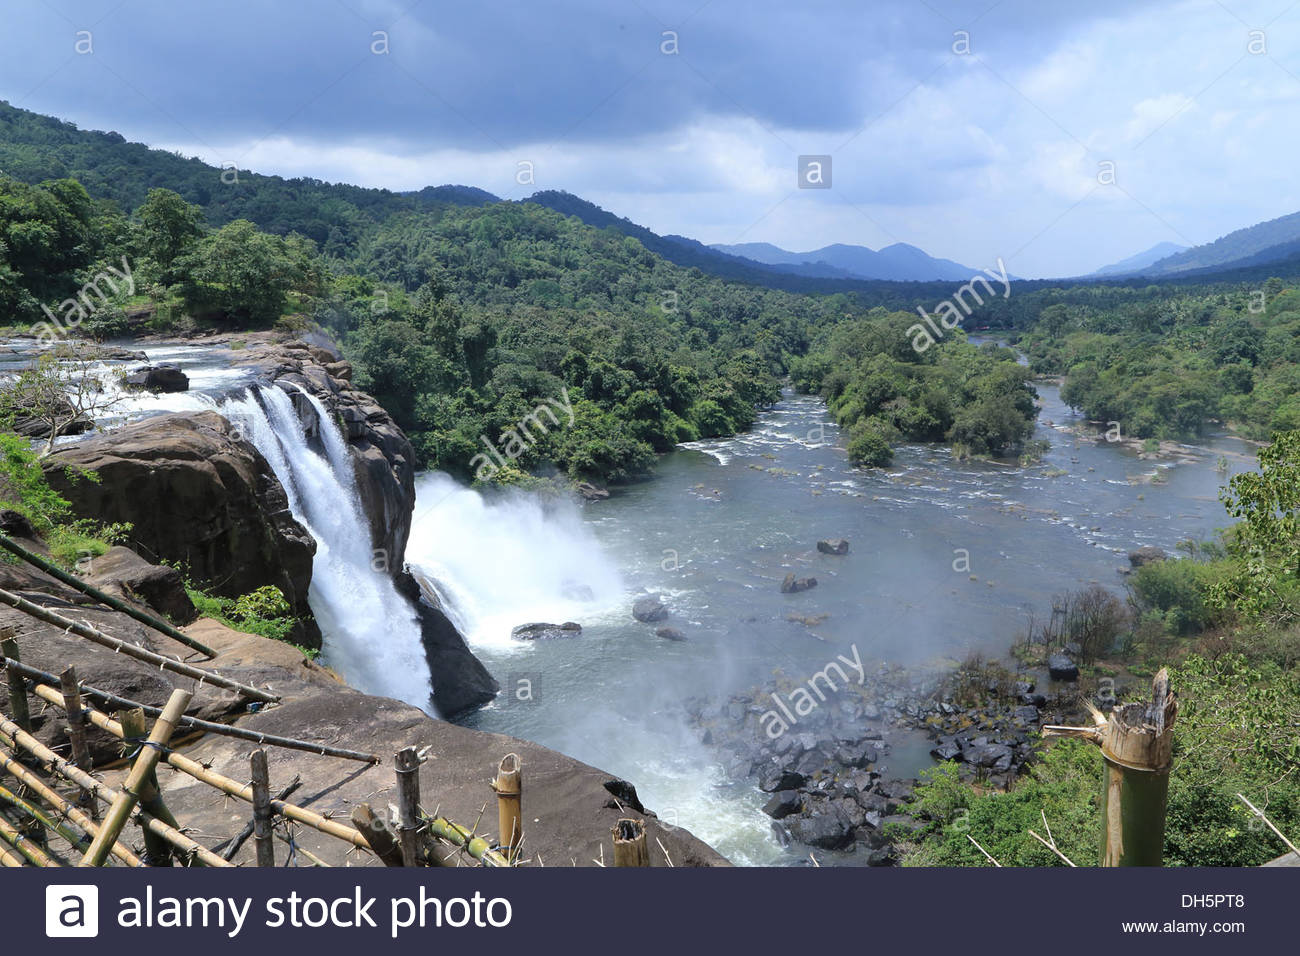 Athirappilly Falls clipart #16, Download drawings